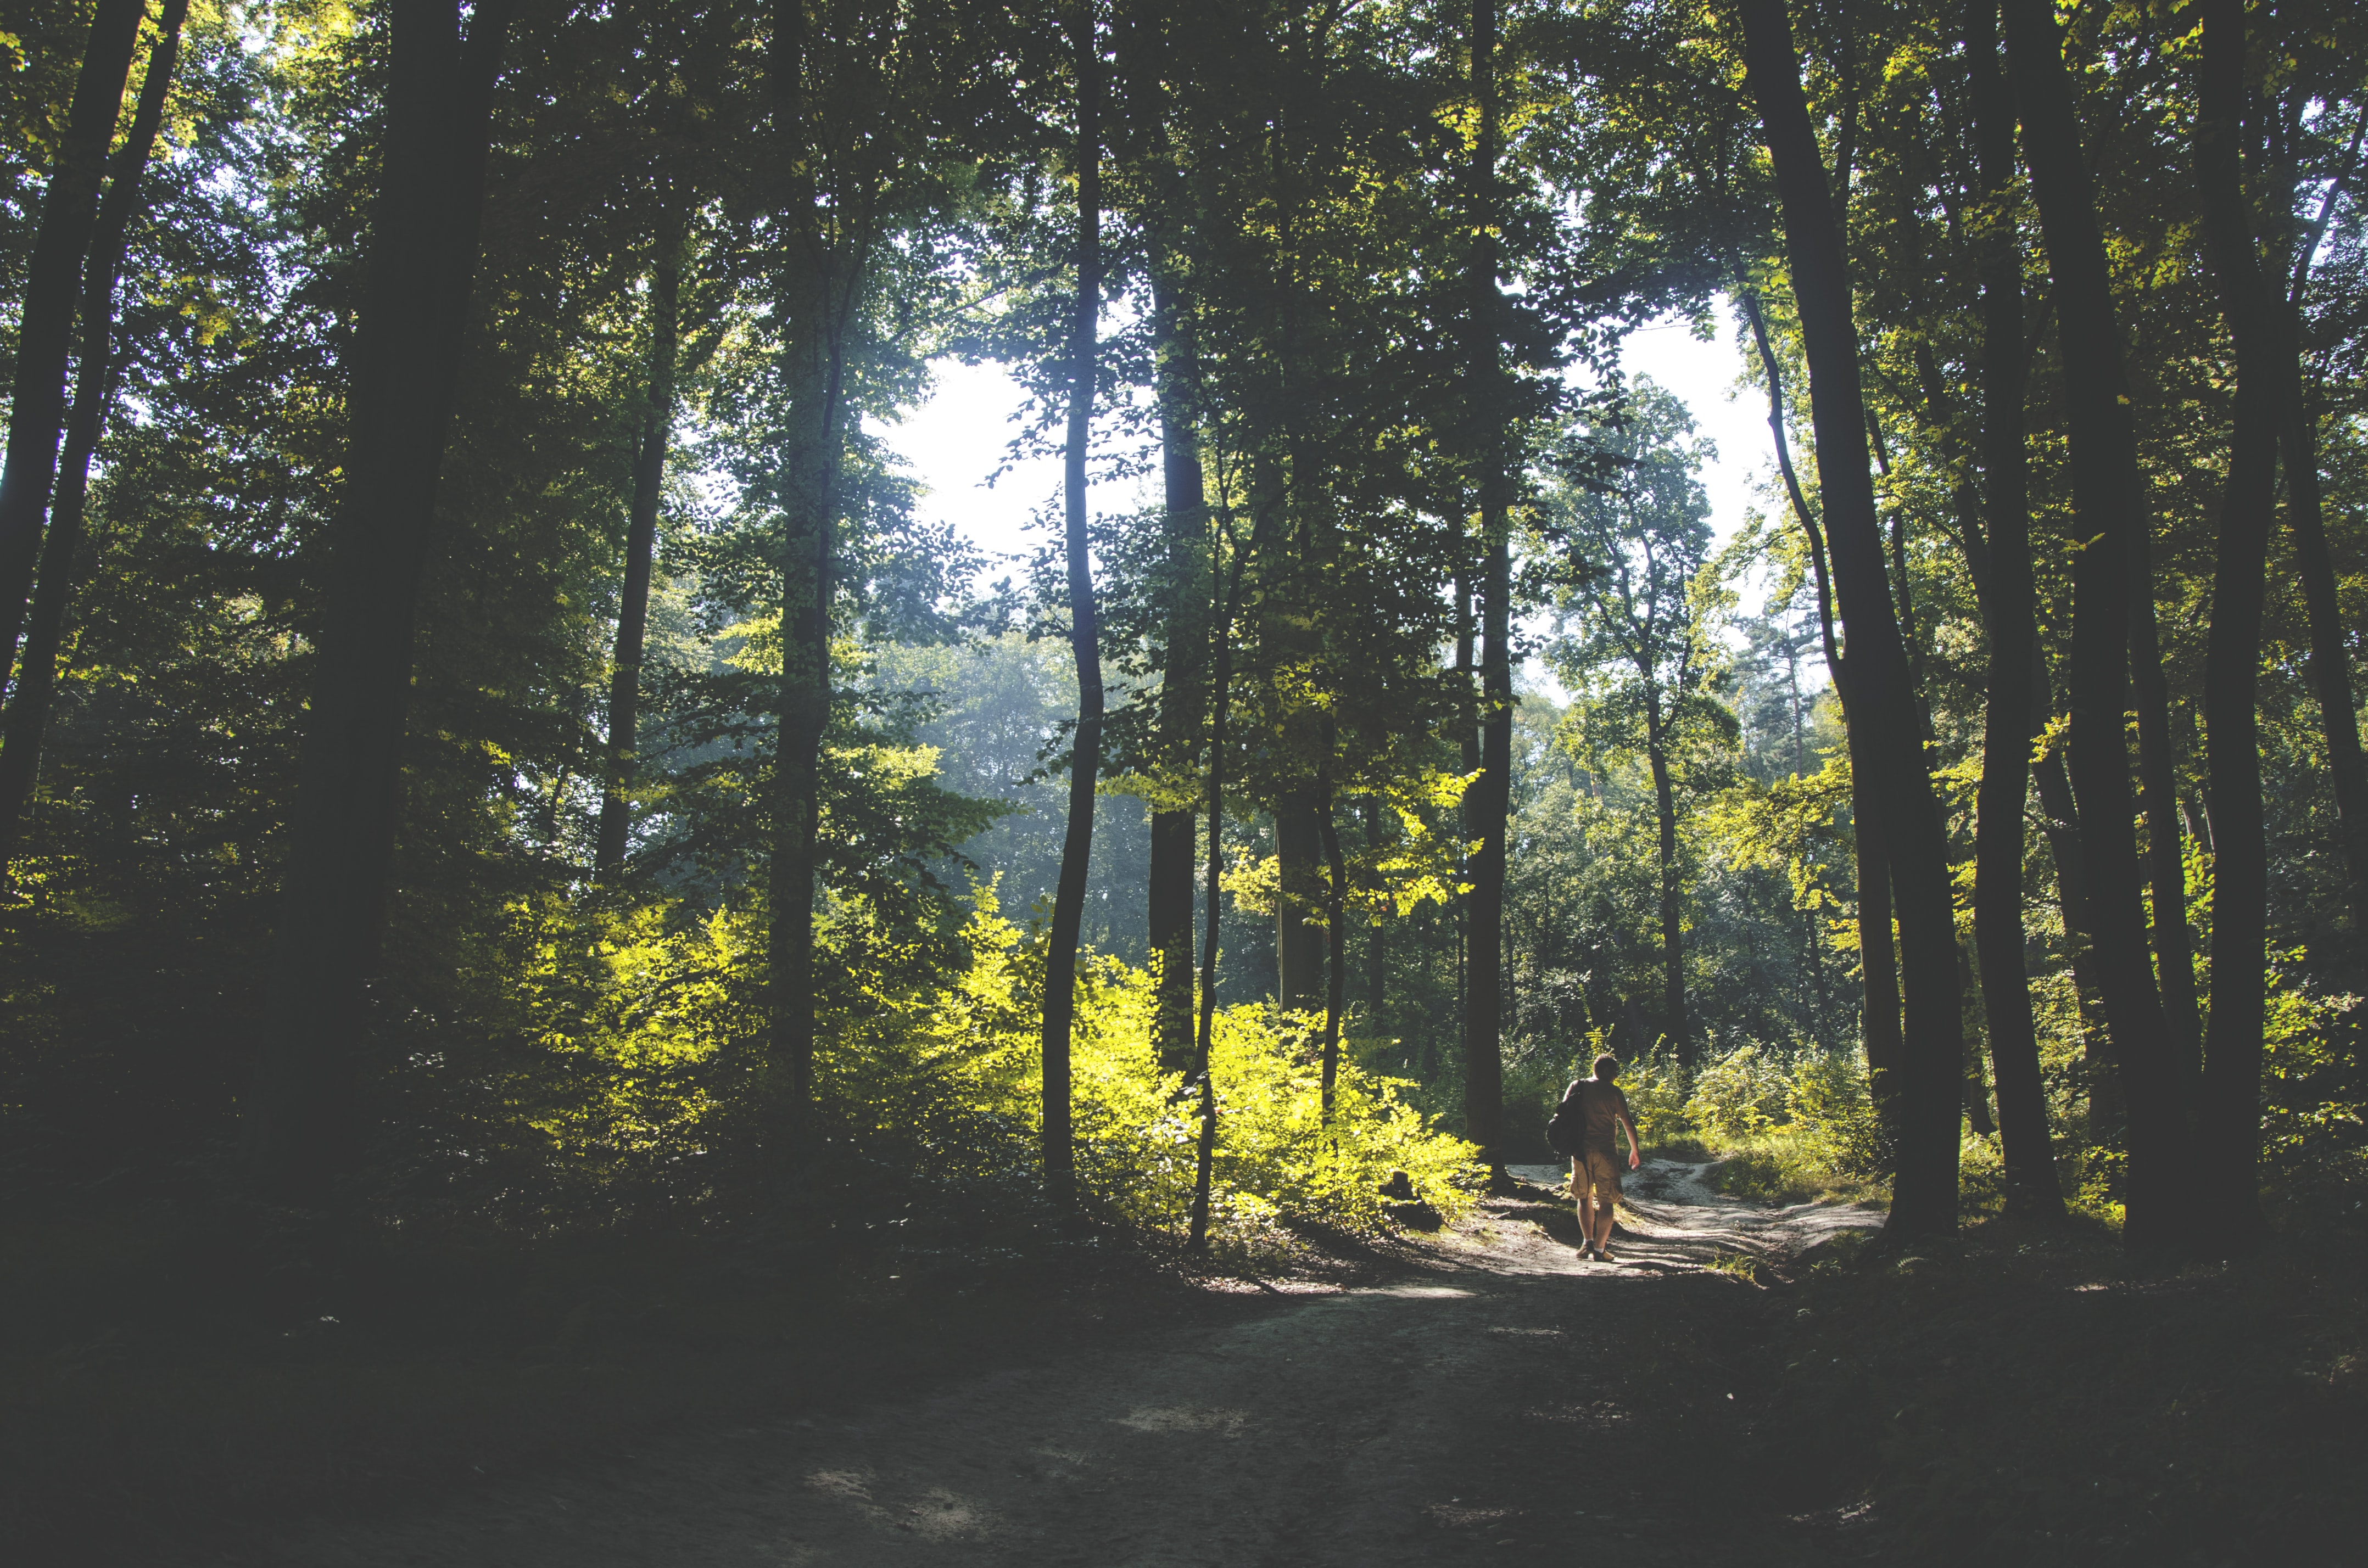 person walking on path surrounded by green leafed trees